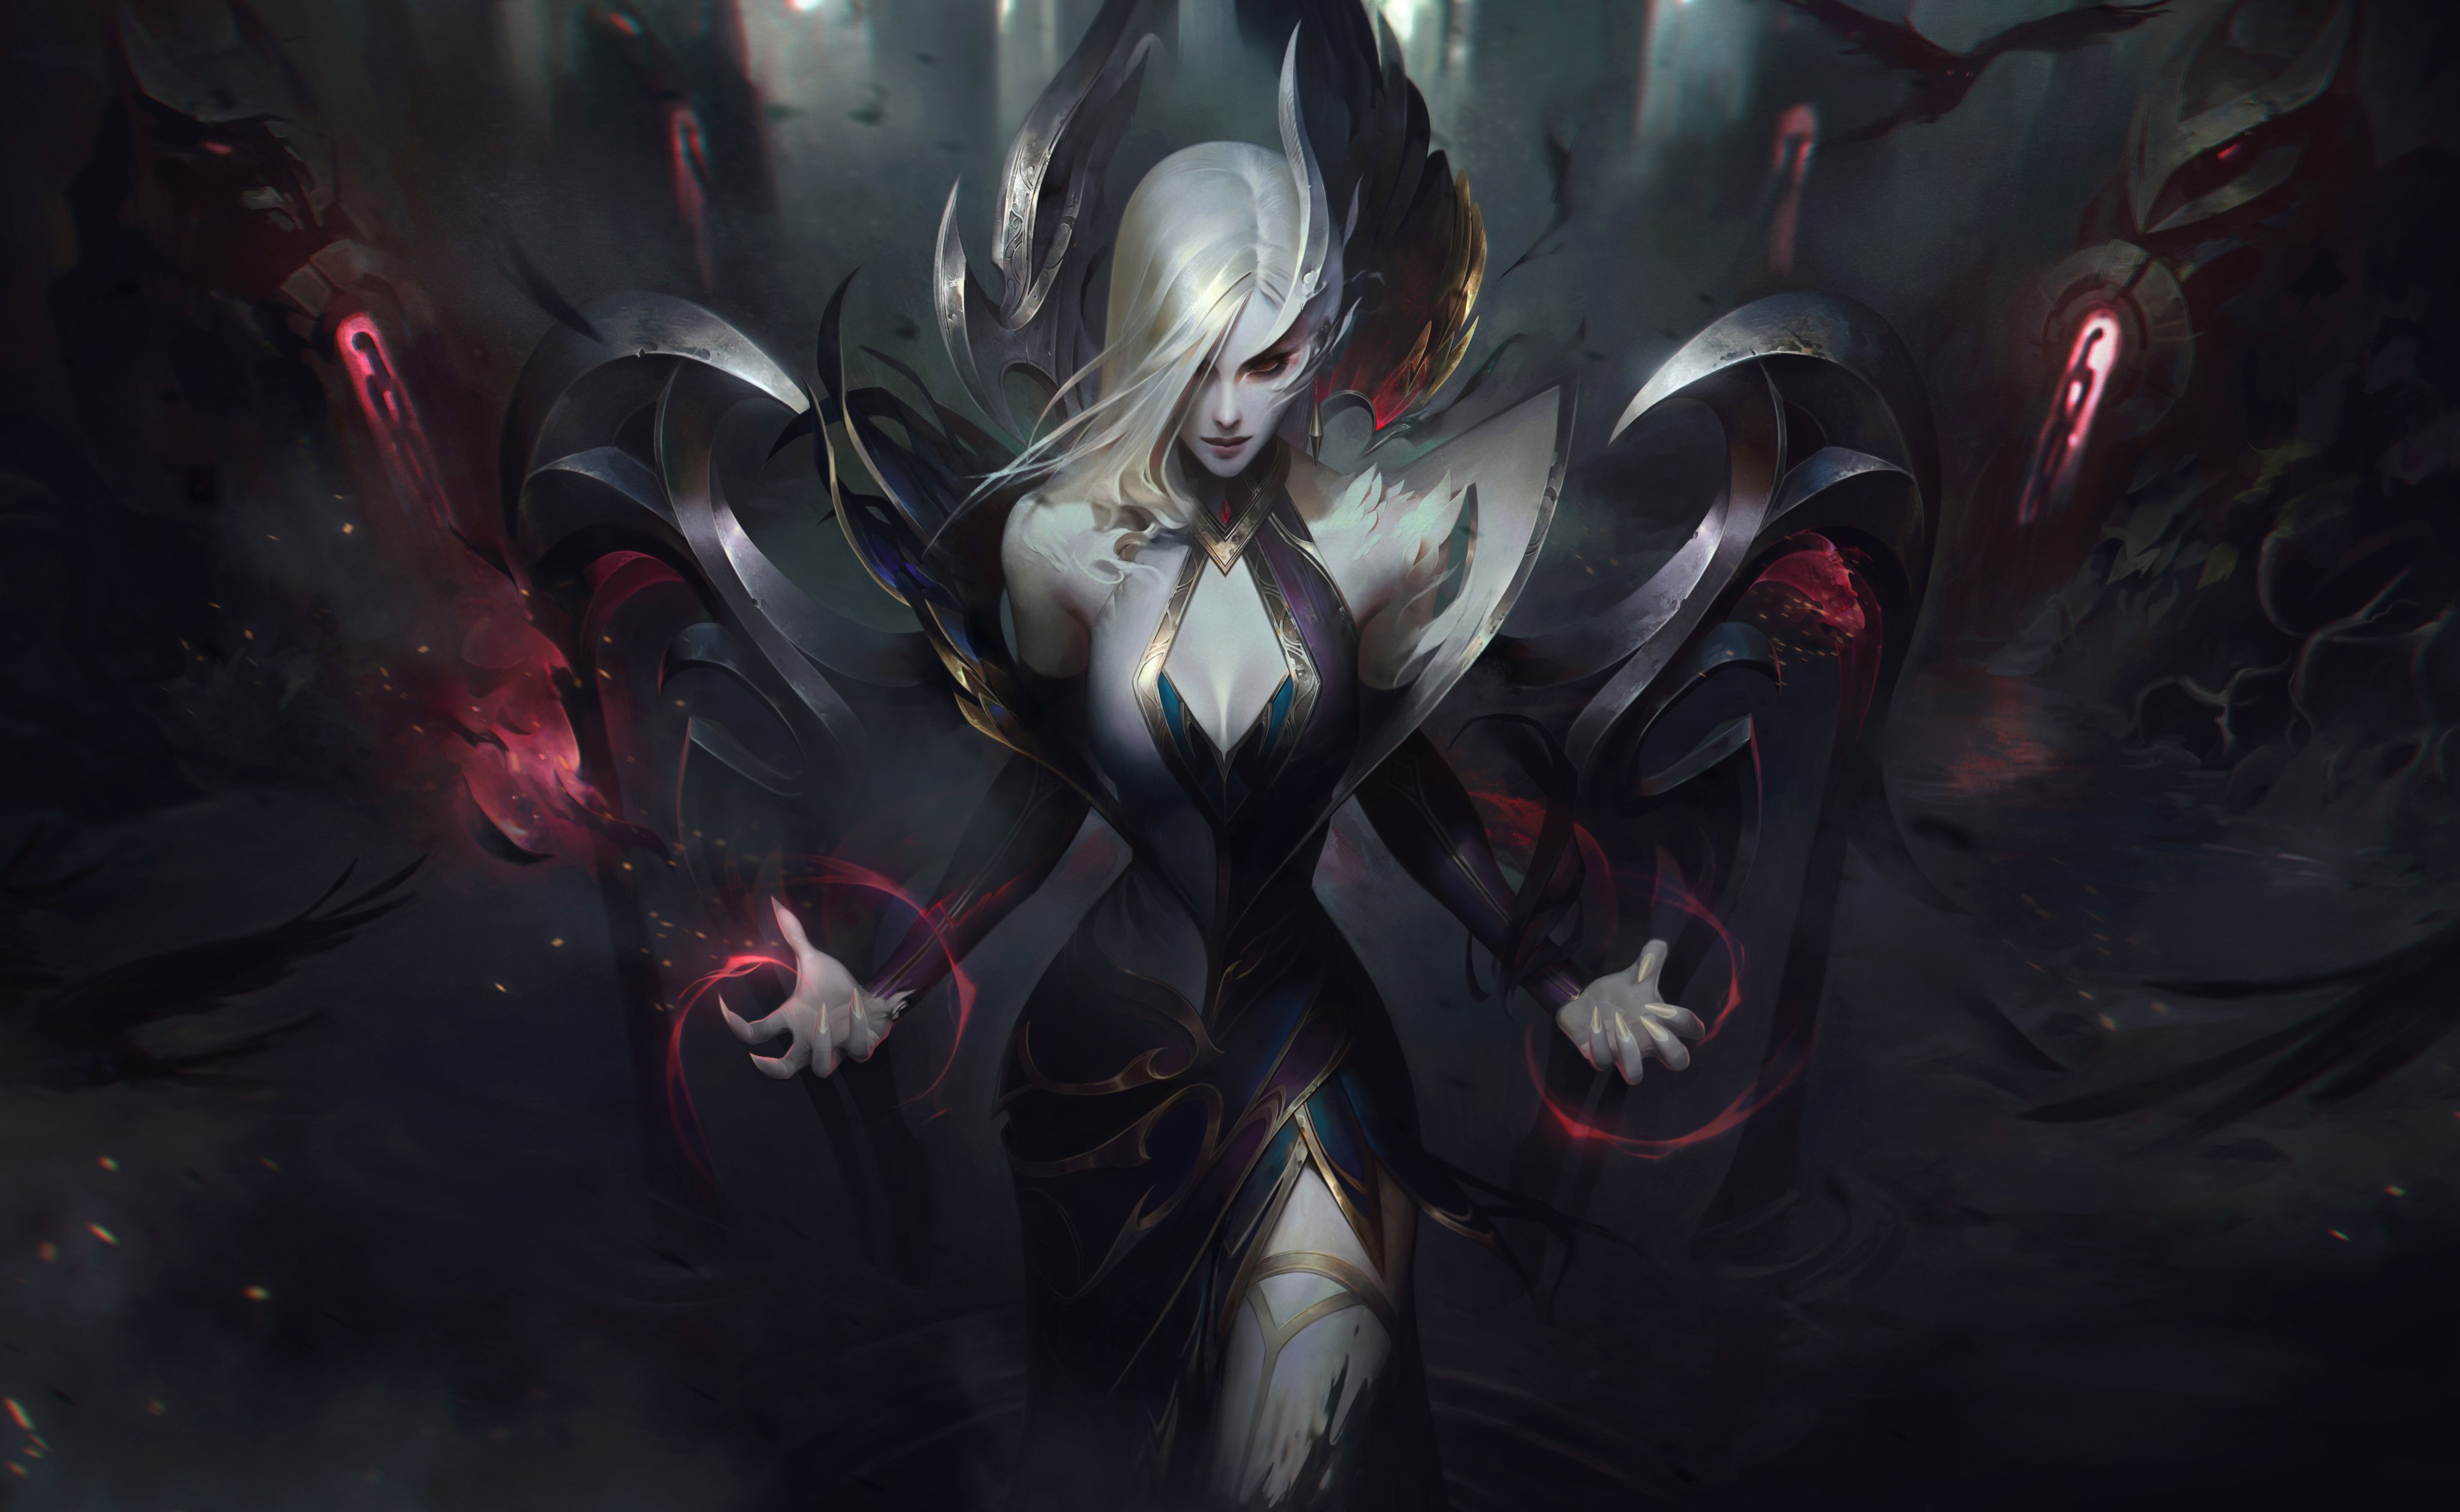 https://how2play.pl/wp-content/uploads/2020/03/coven-morgana-splash-art-high-resolution.png